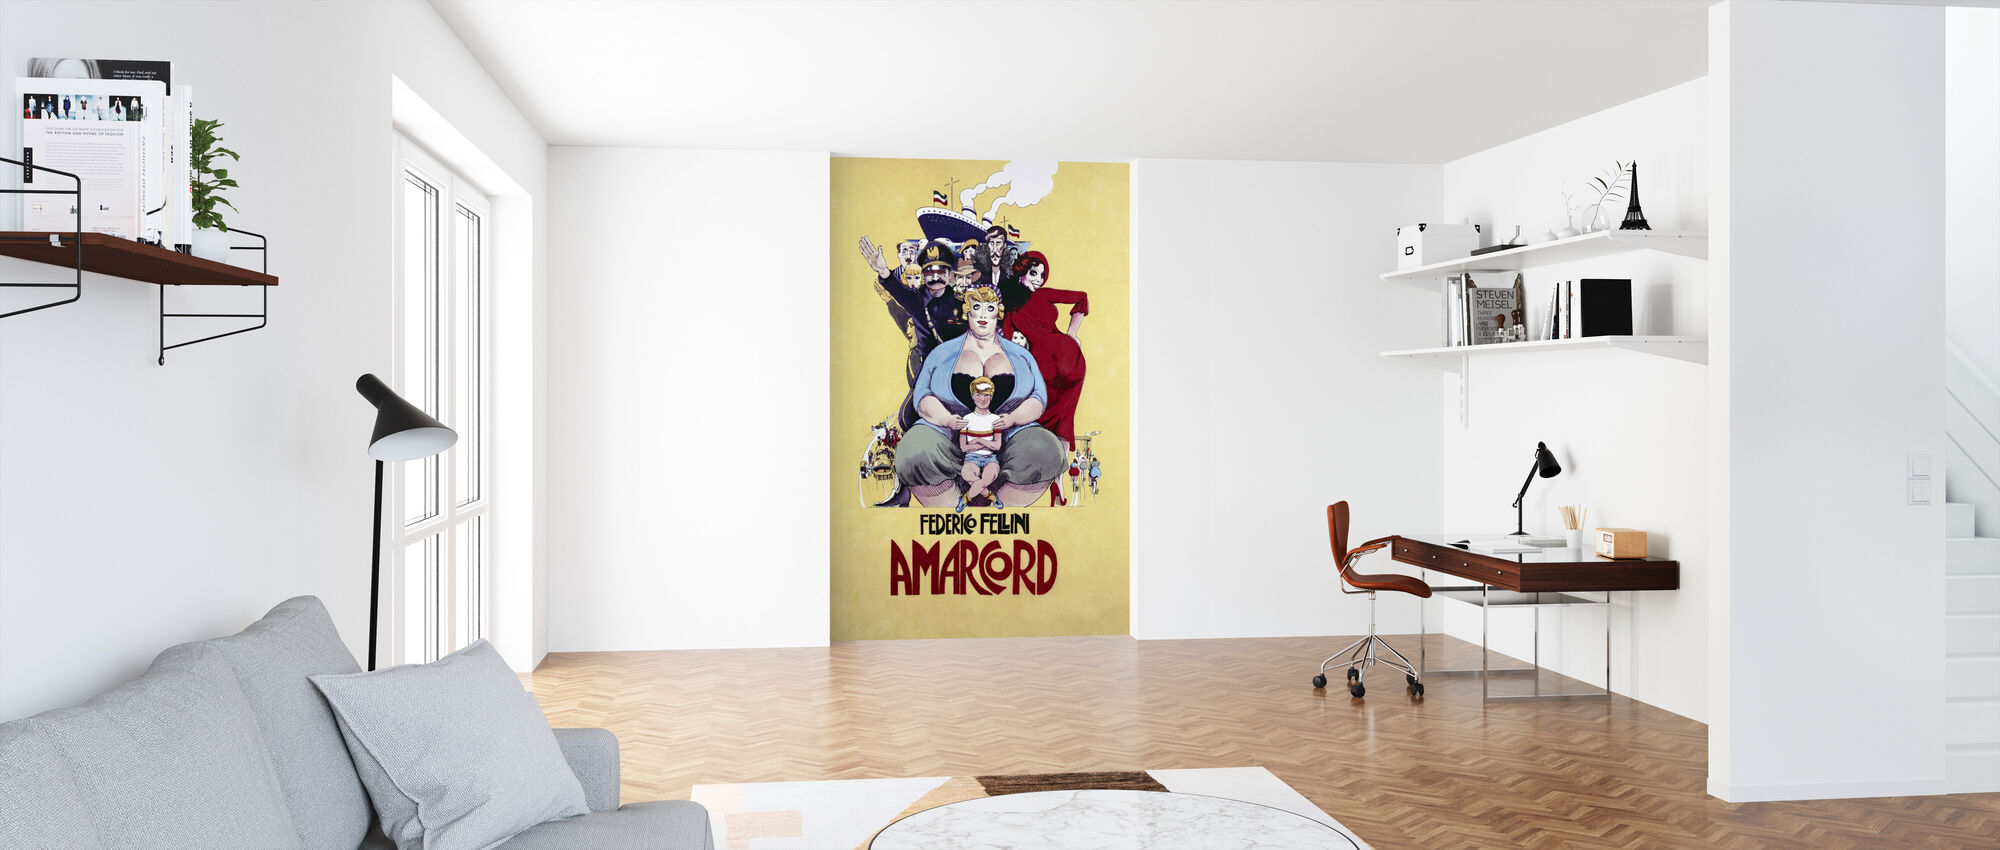 Amarcord - Wallpaper - Office